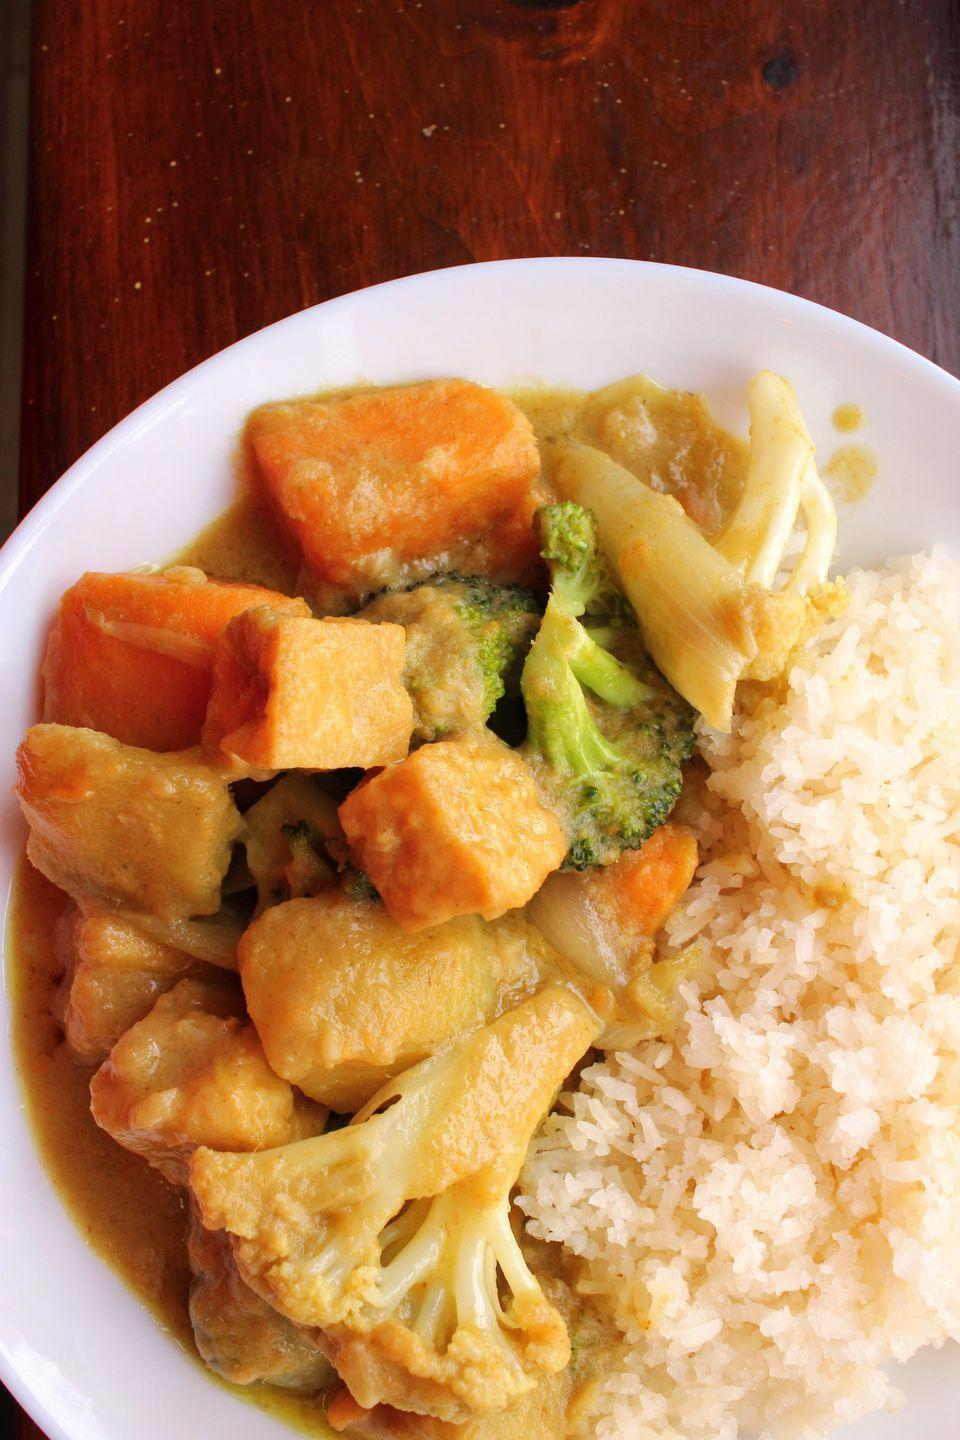 """<p>For this vegan curry, we went for ease, so that you can whip it up in under an hour for a fuss-free weeknight dinner.</p><p>Get the recipe from <a href=""""https://www.delish.com/cooking/recipe-ideas/a35059425/vegan-curry-recipe/"""" rel=""""nofollow noopener"""" target=""""_blank"""" data-ylk=""""slk:Delish"""" class=""""link rapid-noclick-resp"""">Delish</a>.</p>"""